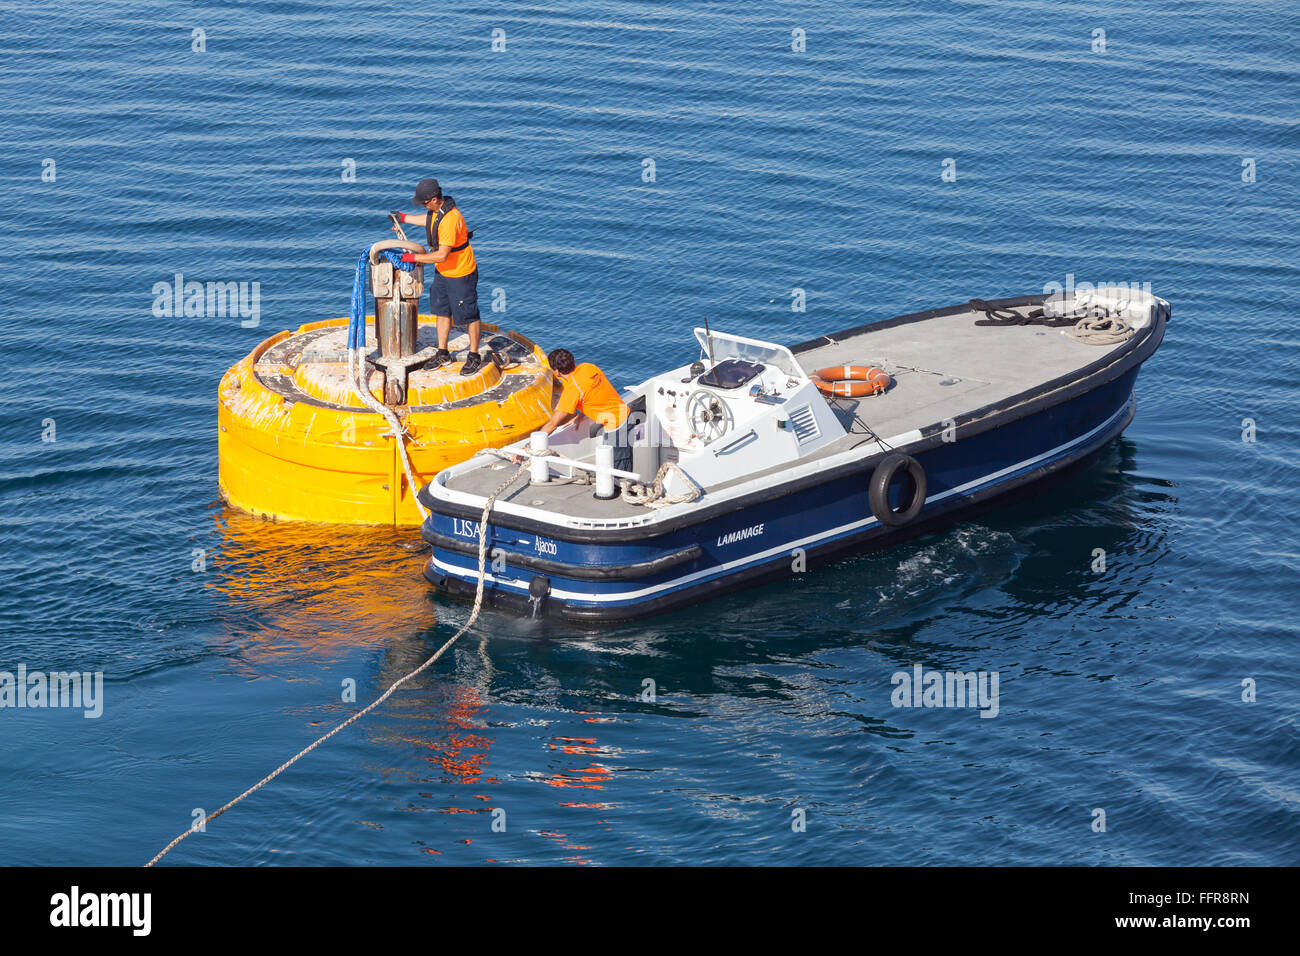 Ajaccio, France - June 30, 2015: Port operations, men at work. Motorboat is used for rope attachment on mooring - Stock Image